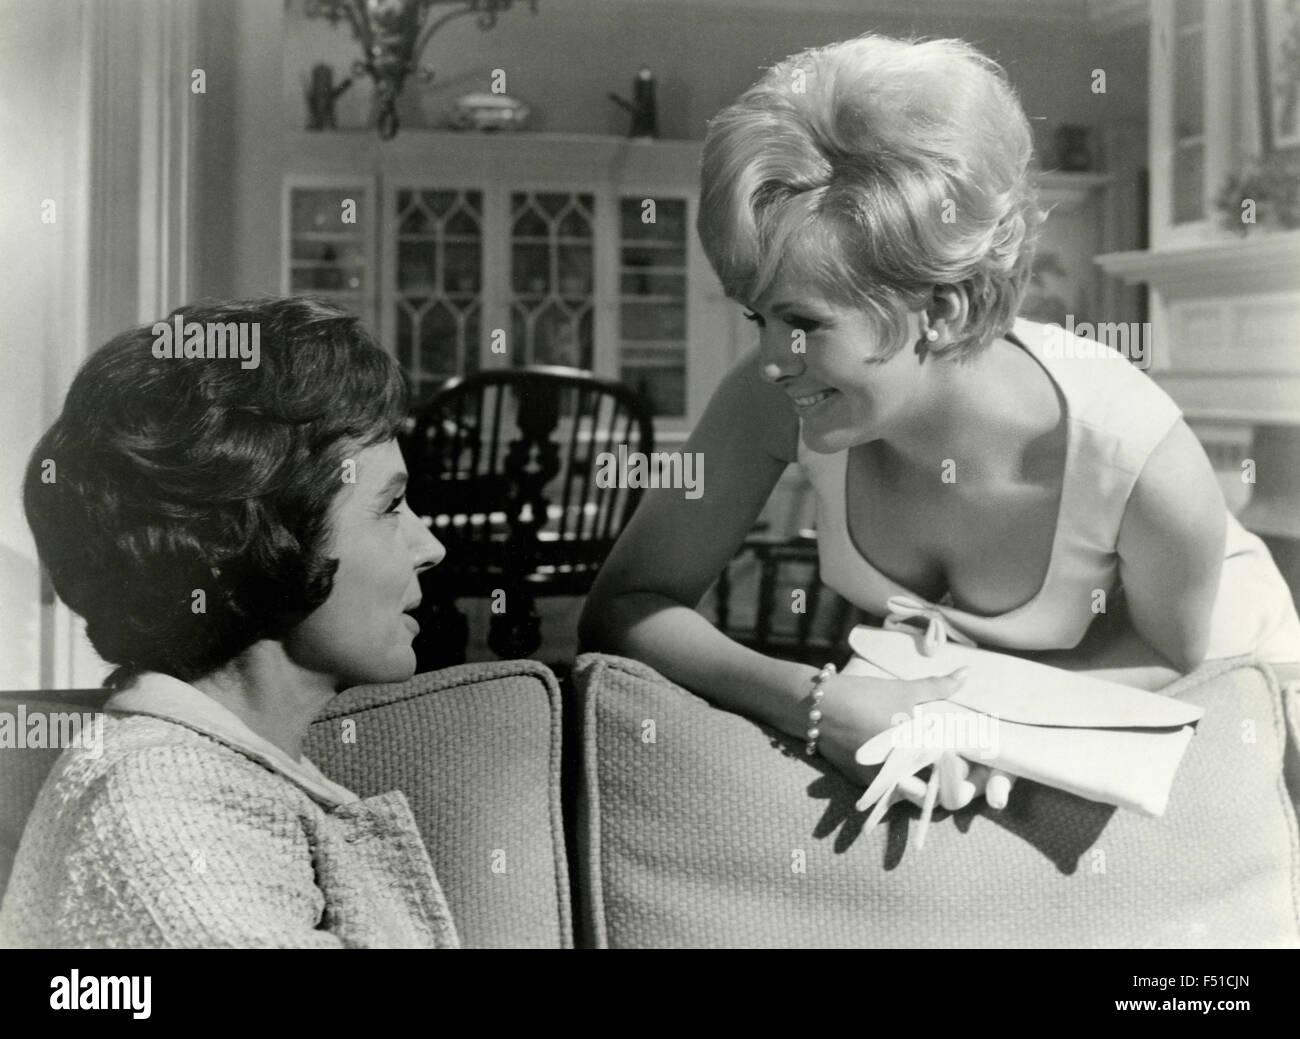 The actress Connie Stevens and Maureen O'Sullivan in a scene from the film 'Never too late', USA - Stock Image